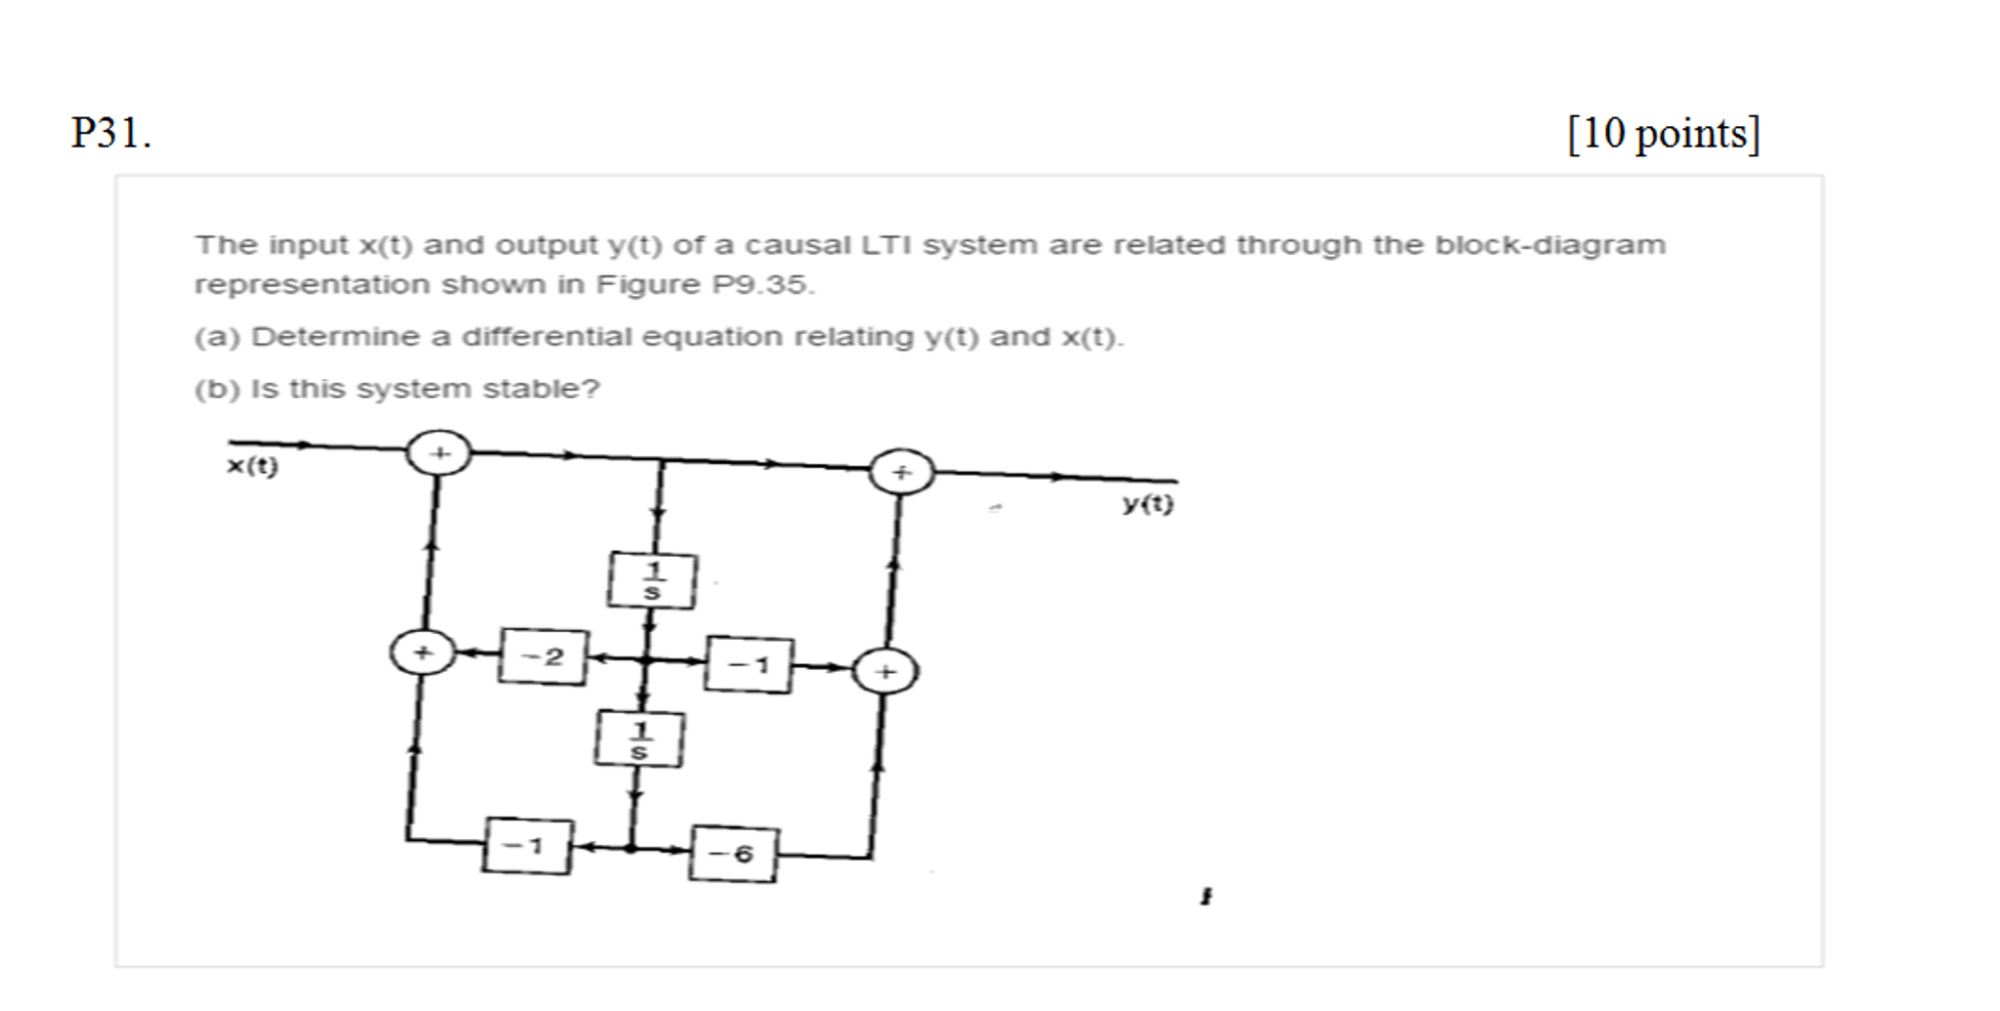 hight resolution of question the input x t and output y t of a causal lti system are related through the block diagram repre